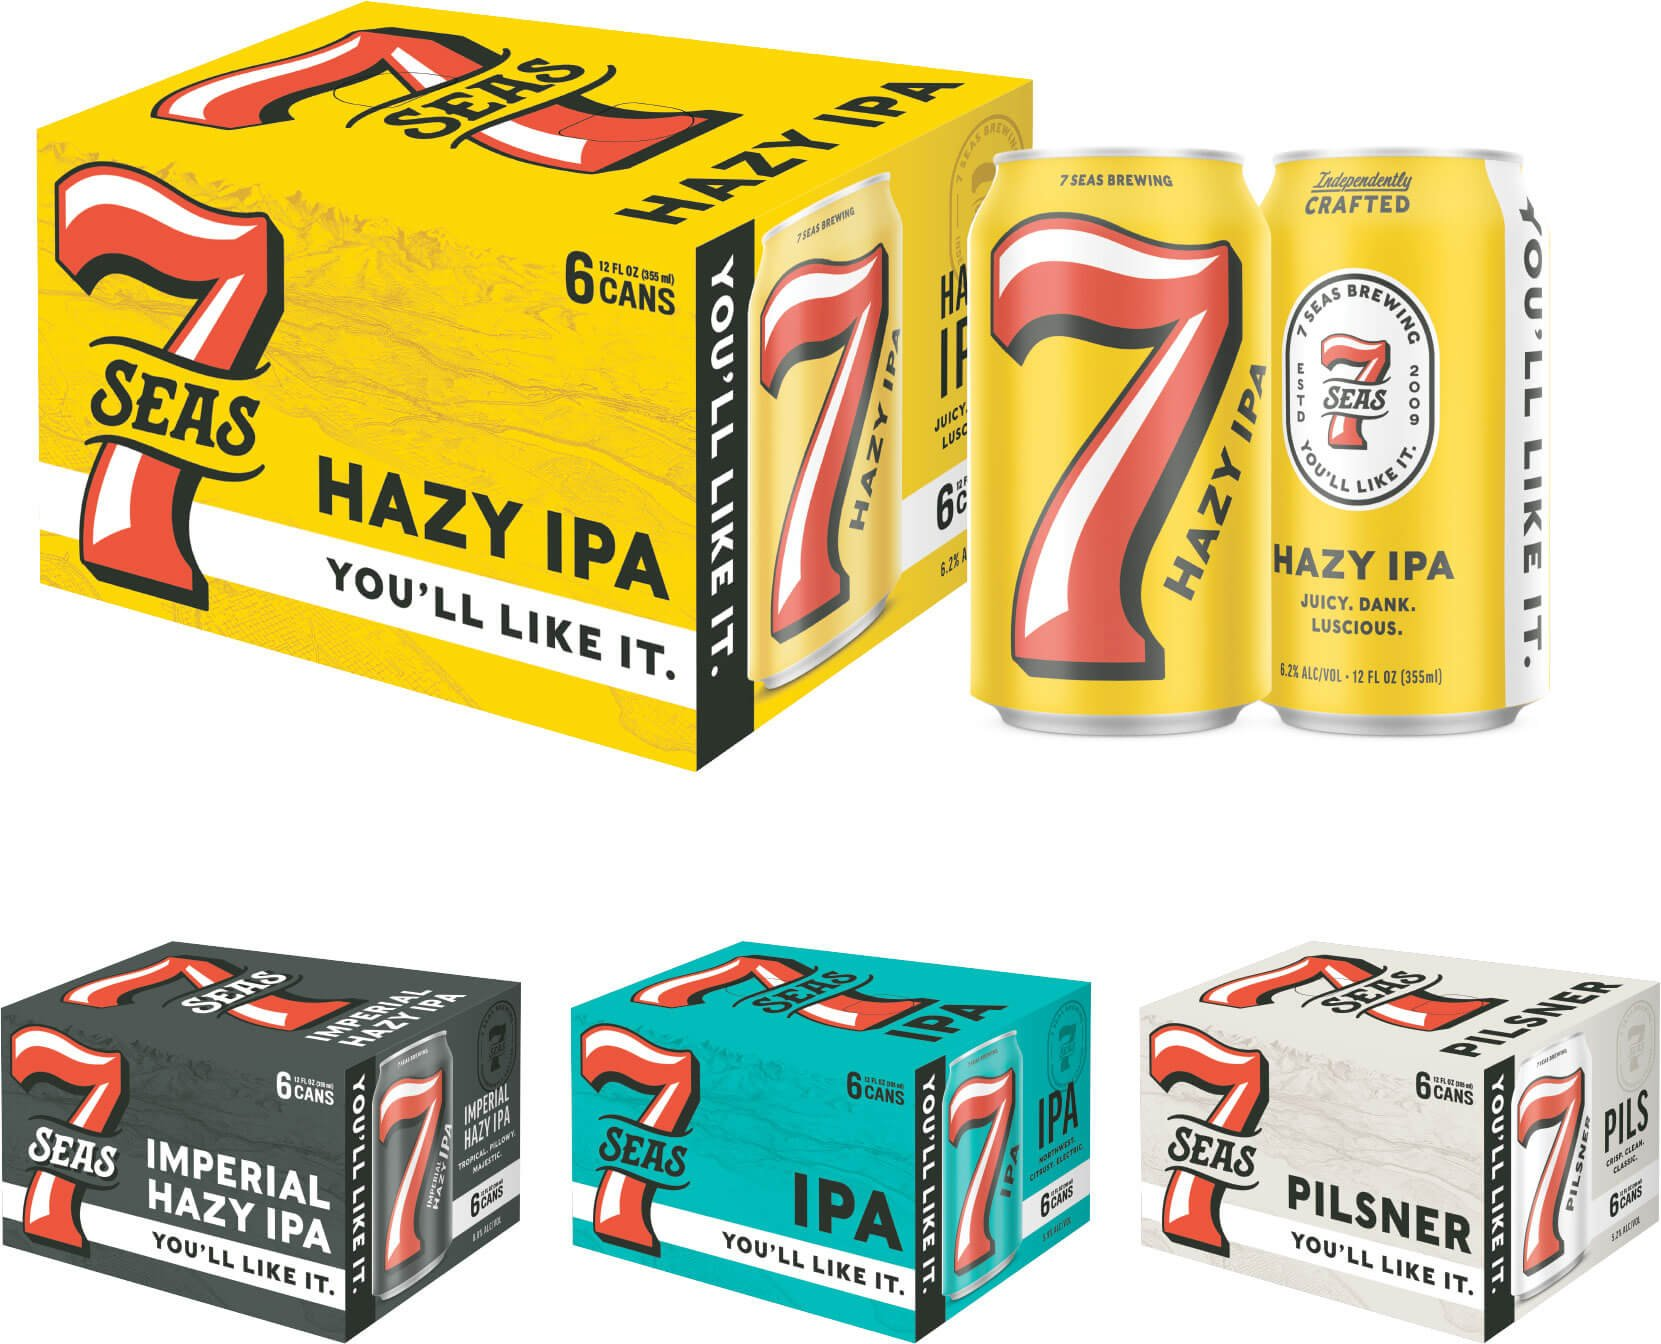 The packaging redesign for six pack cartons of the core lineup by 7 Seas Brewing